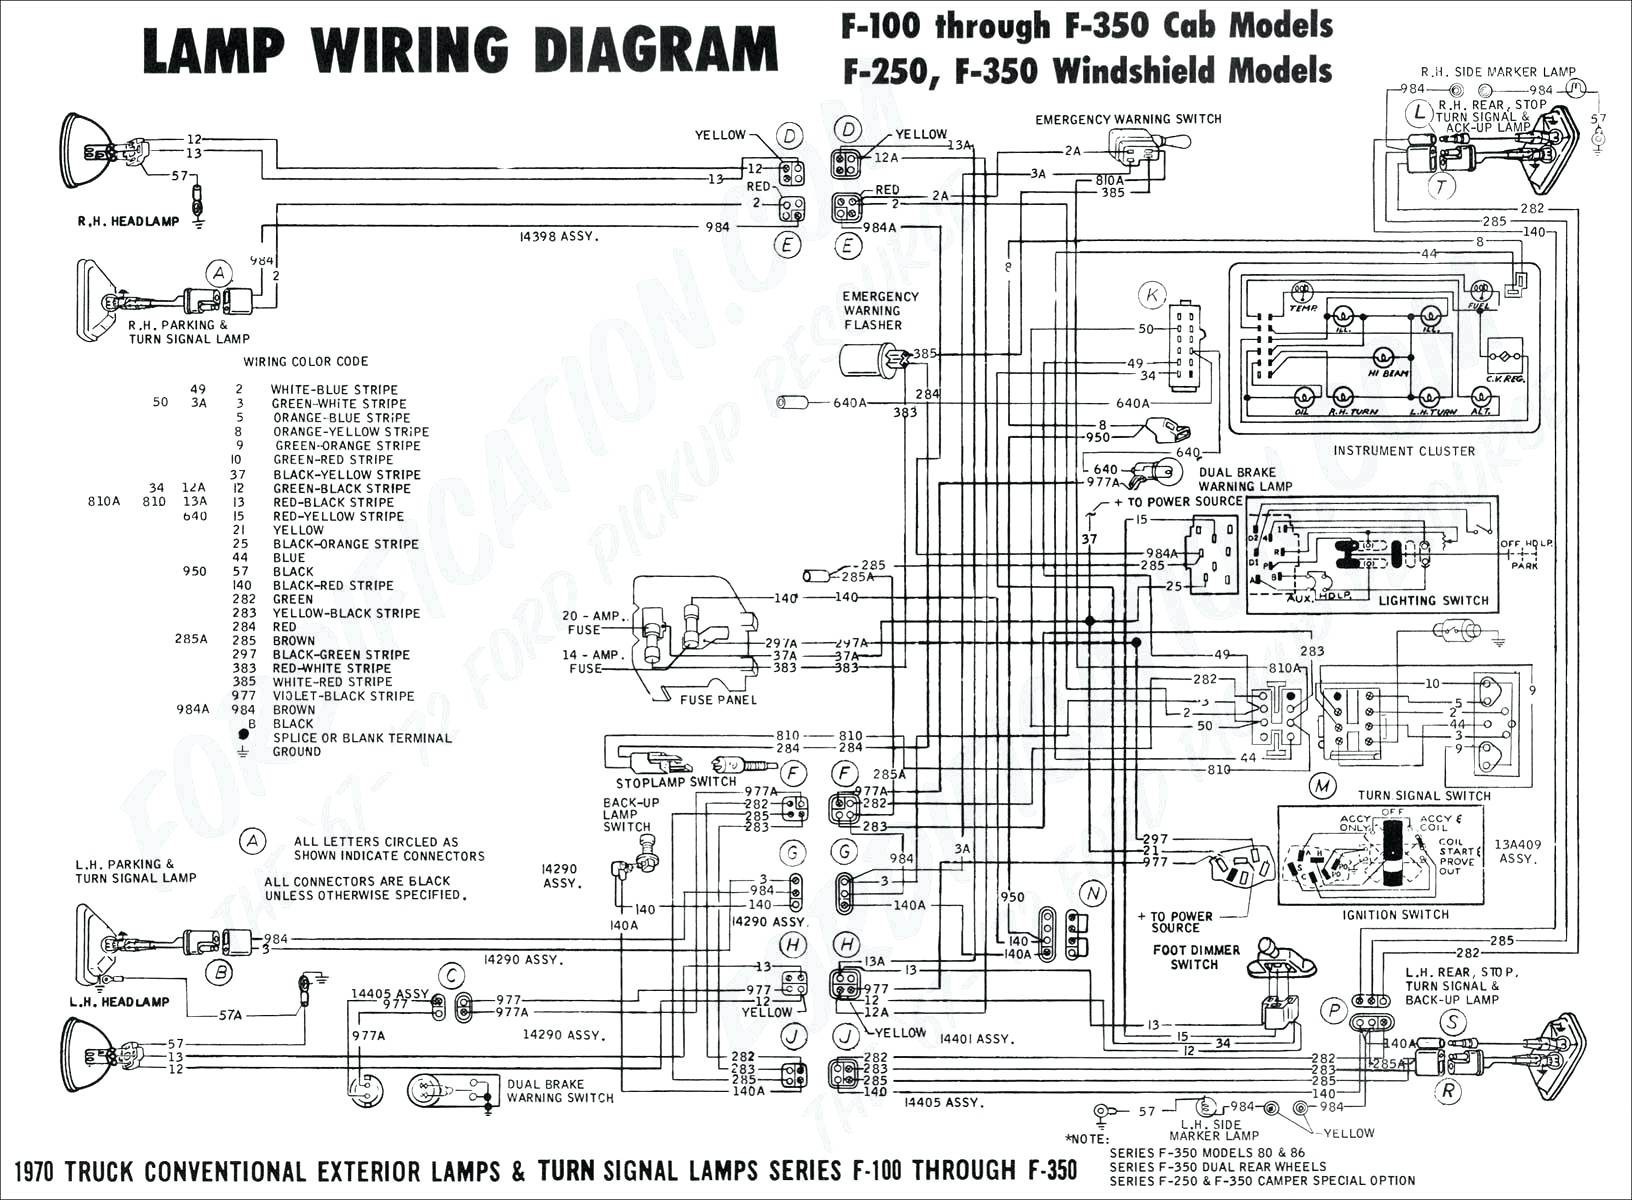 2003 Chevy Impala Engine Diagram 1996 Chevy Trailer Wiring Diagram Premium Wiring Diagram Of 2003 Chevy Impala Engine Diagram Chevrolet Engine Diagrams Wiring Diagram Options